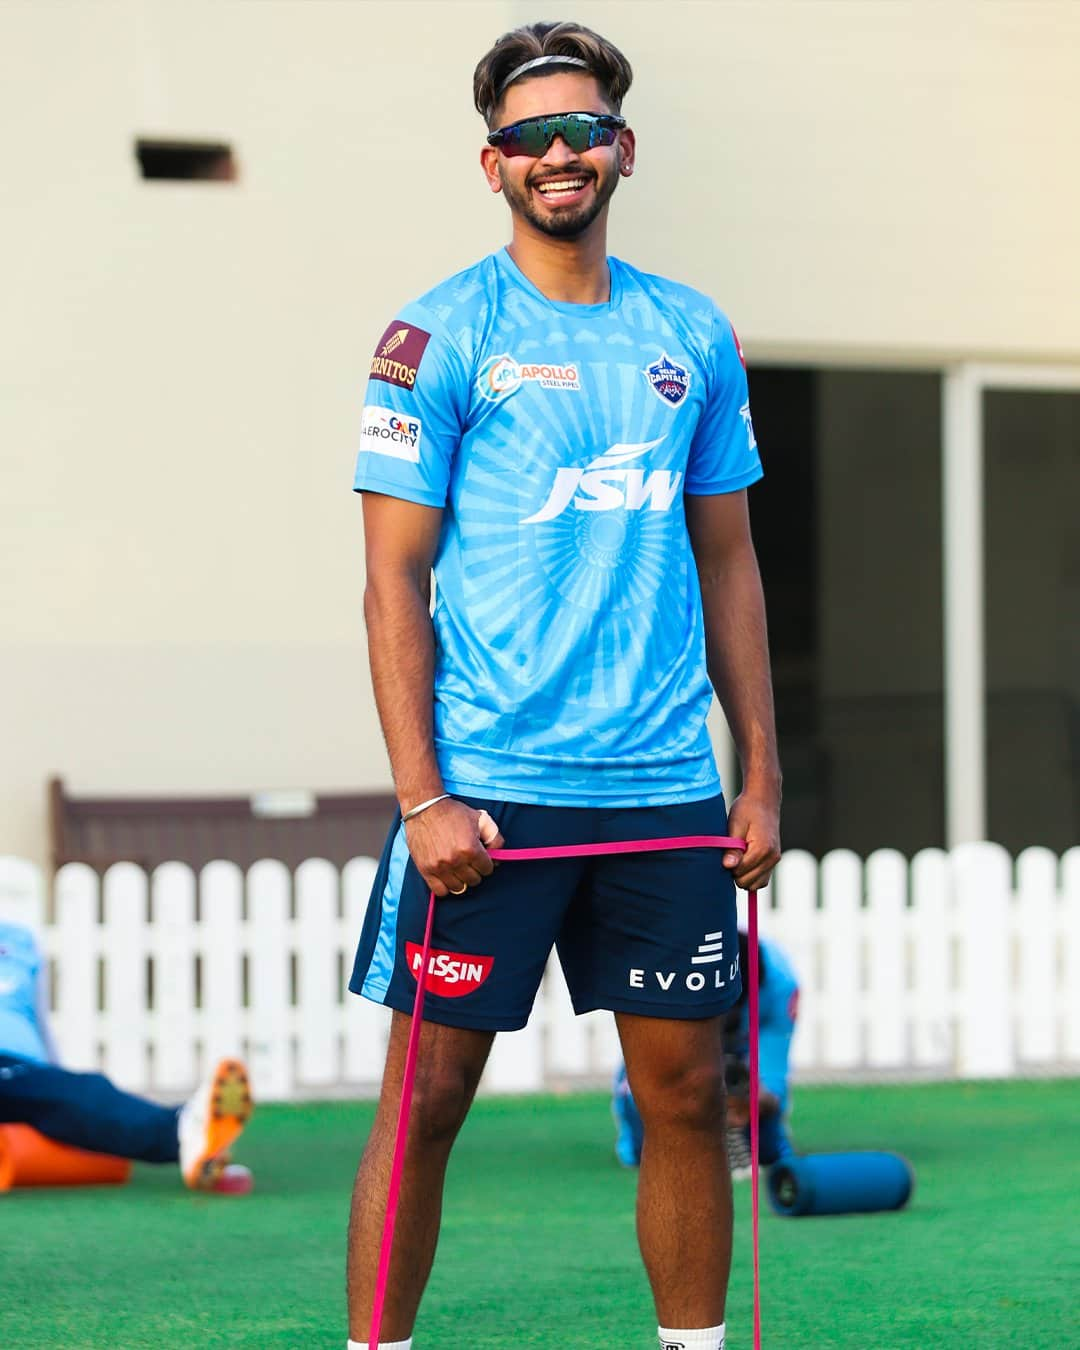 Former skipper Shreyas Iyer will be back in Delhi Capitals side after missing the first half of the season due to injury. (Photo: Delhi Capitals)